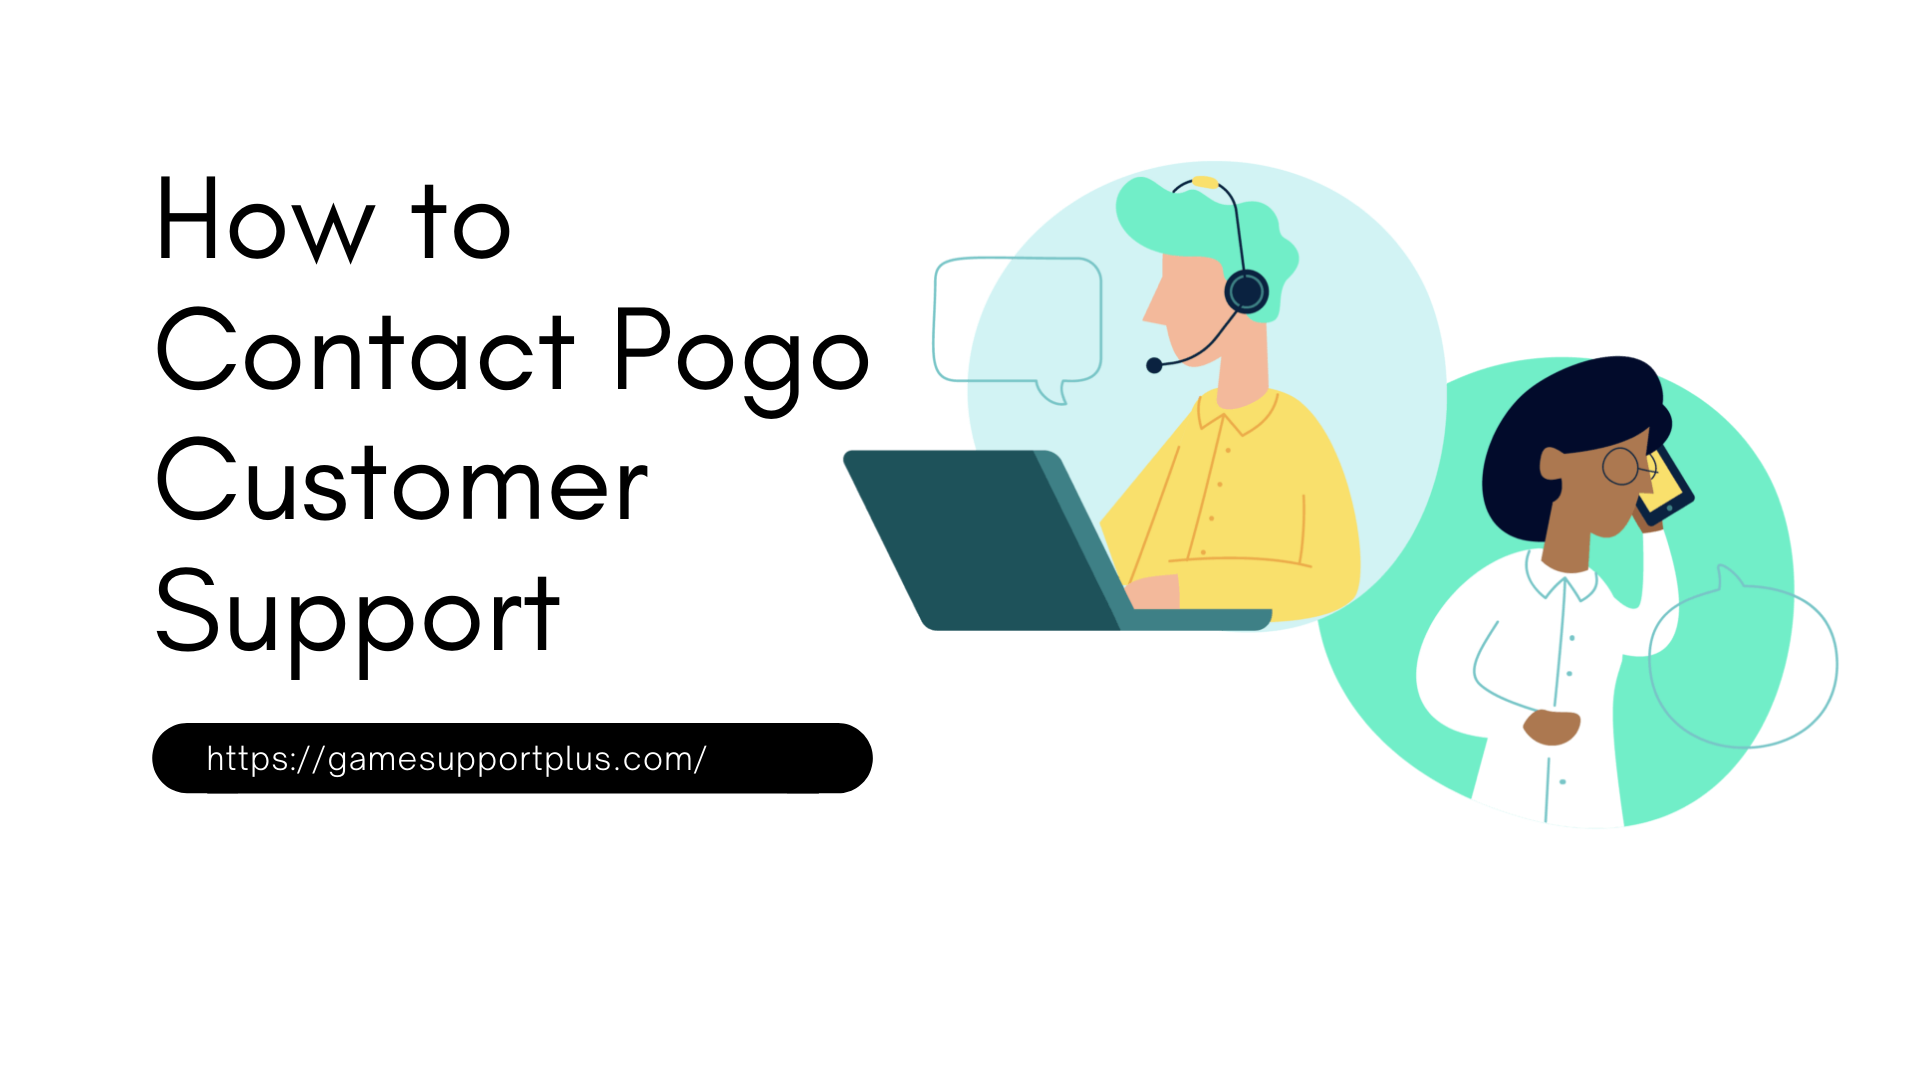 How to Contact pogo customer Support?